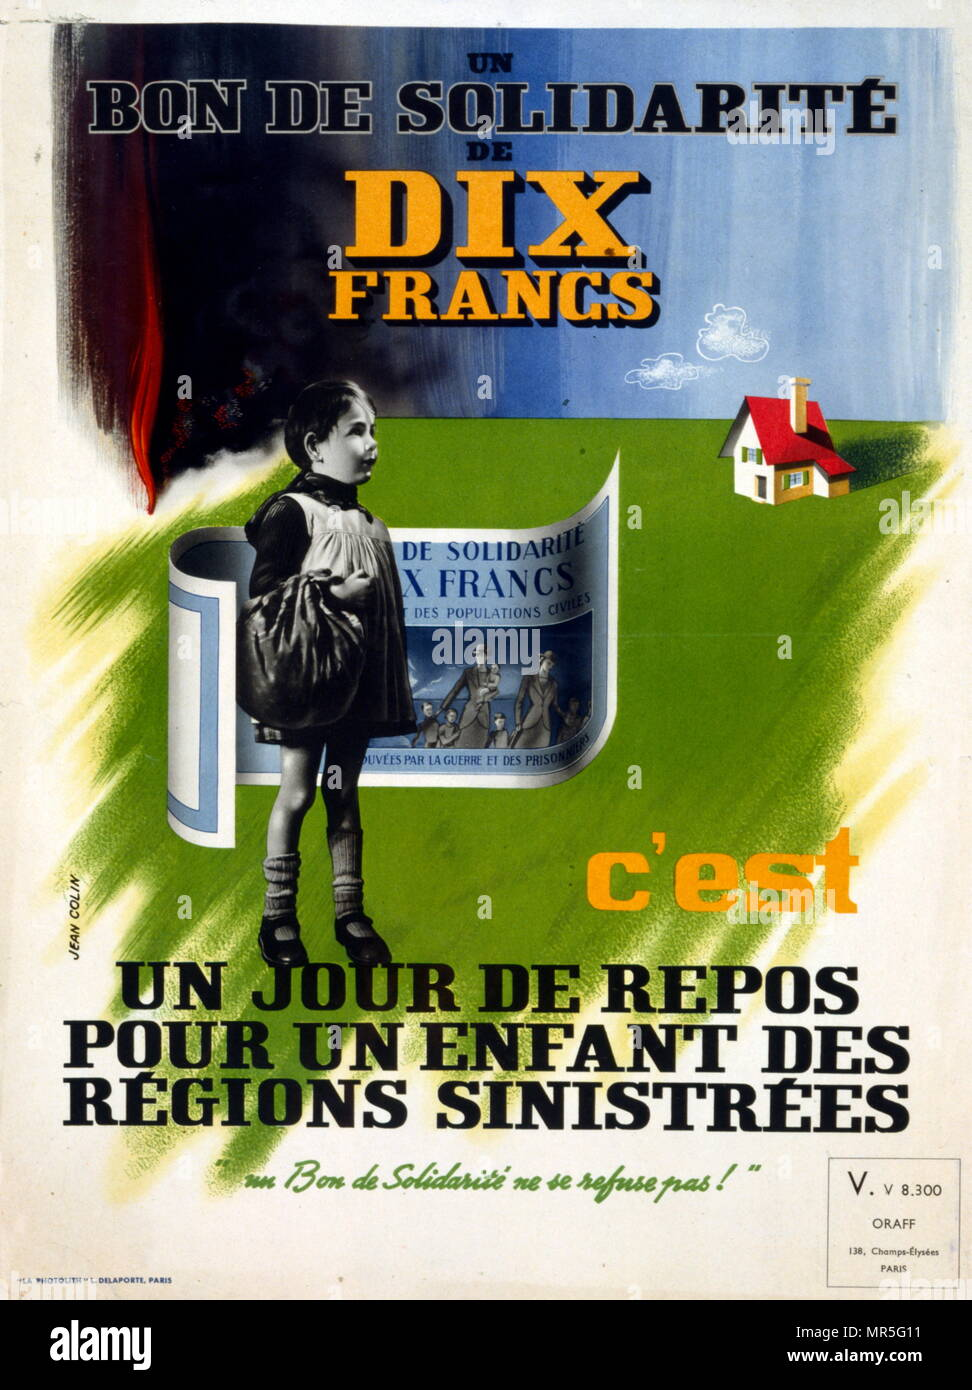 French world war two poster appealing for citizens to raise funds evacuated children in unfamiliar places in France - Stock Image